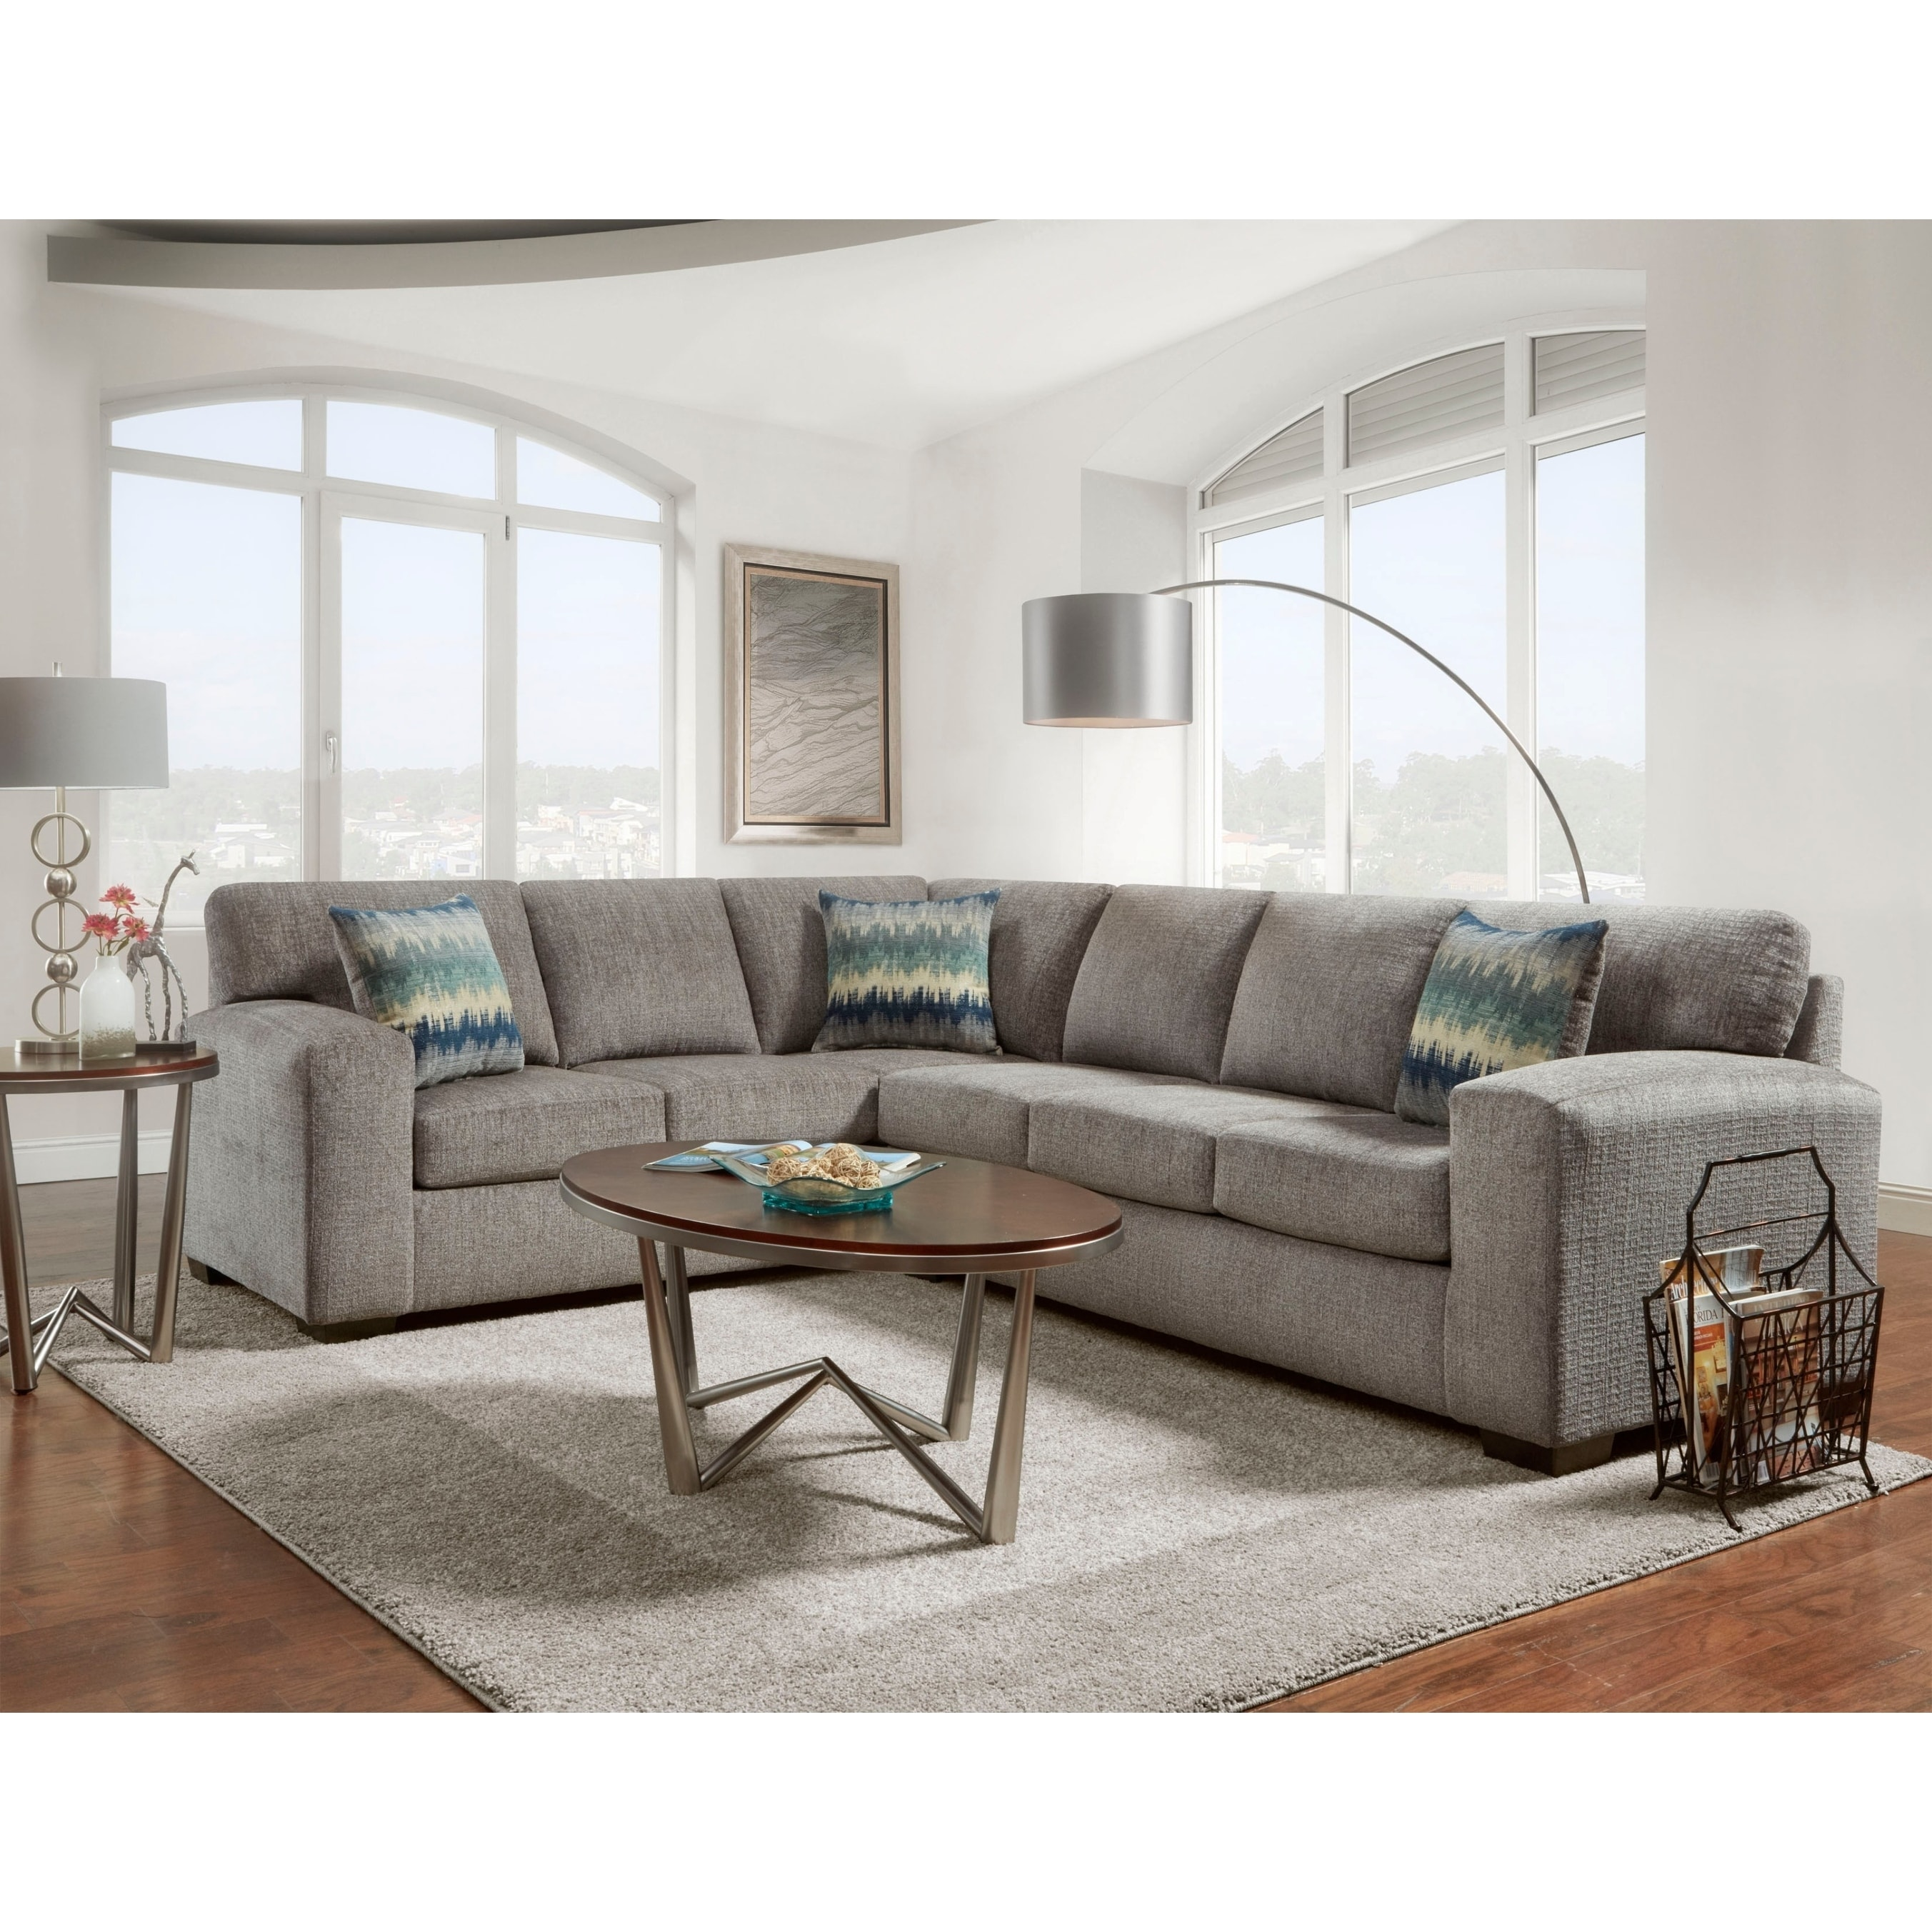 Bergen Silverton Pewter Fabric Sectional Sofa